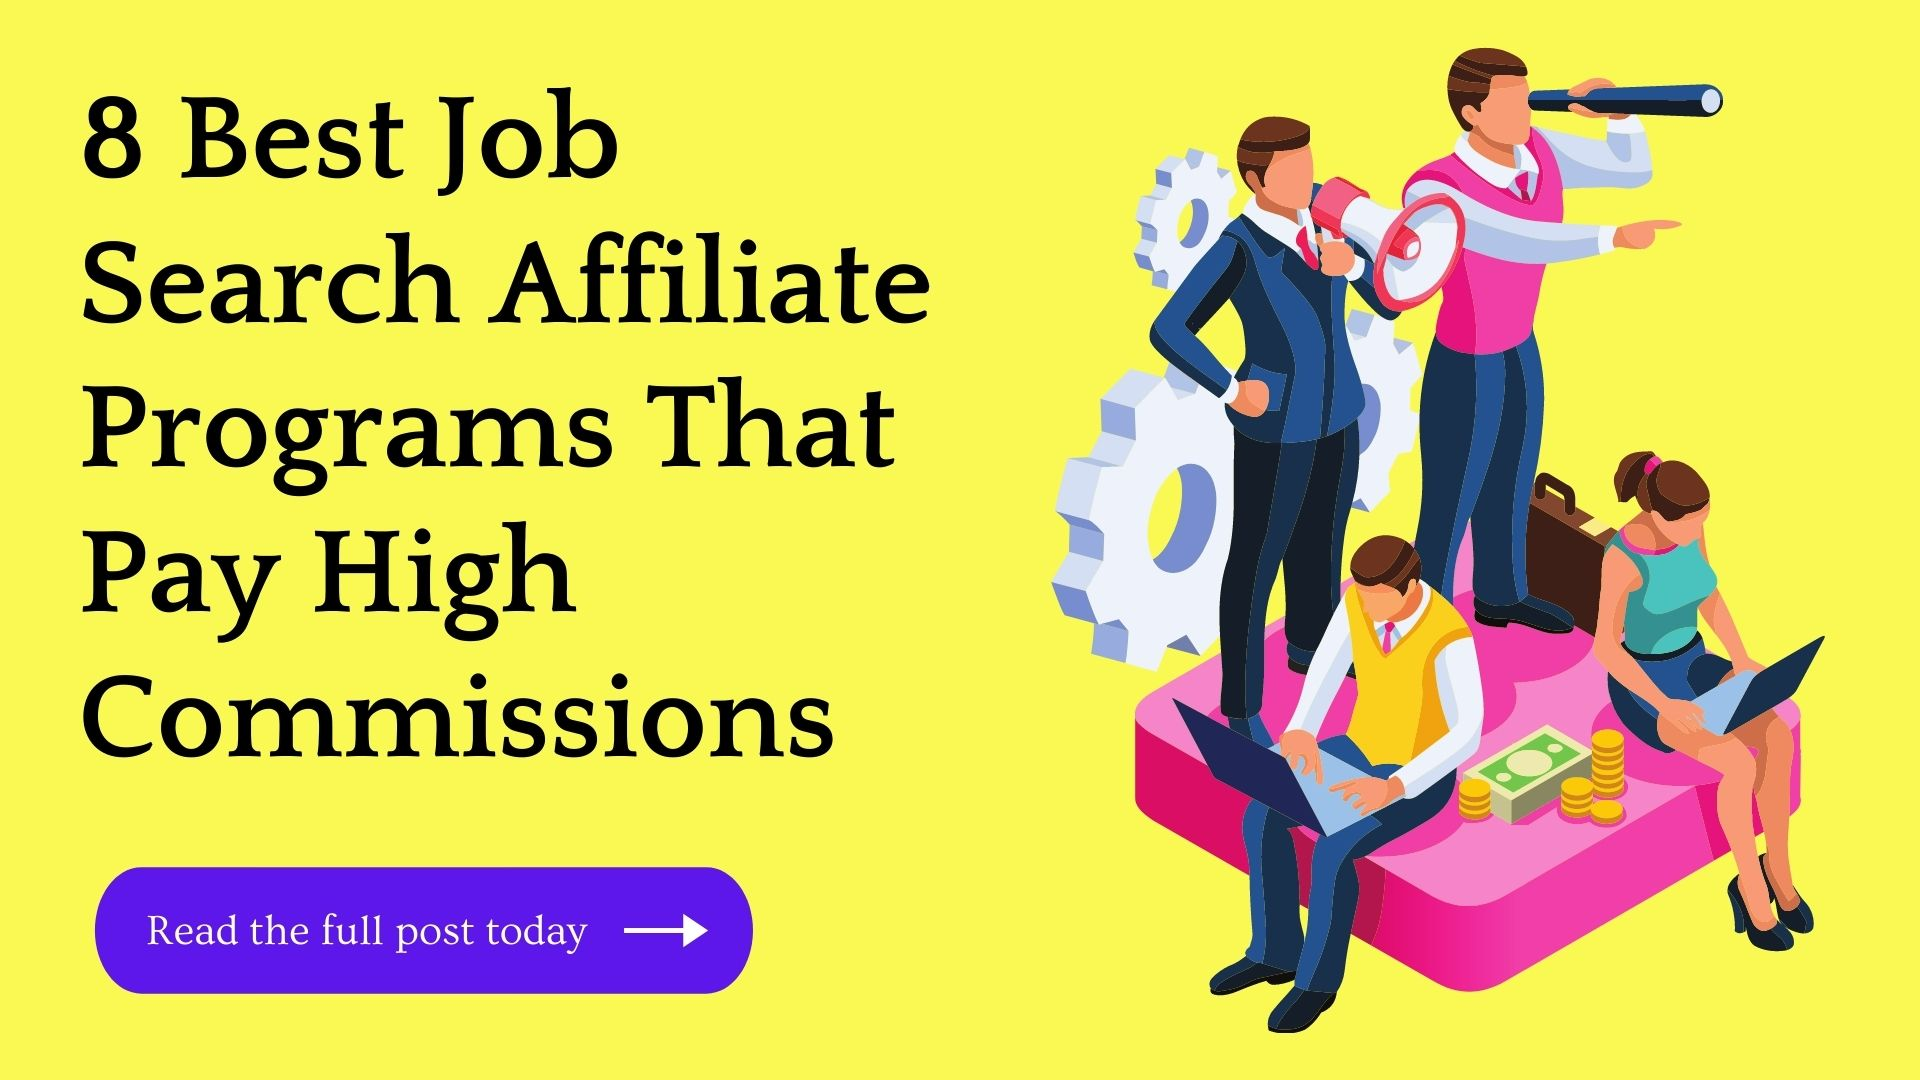 Best Job Search Affiliate Programs